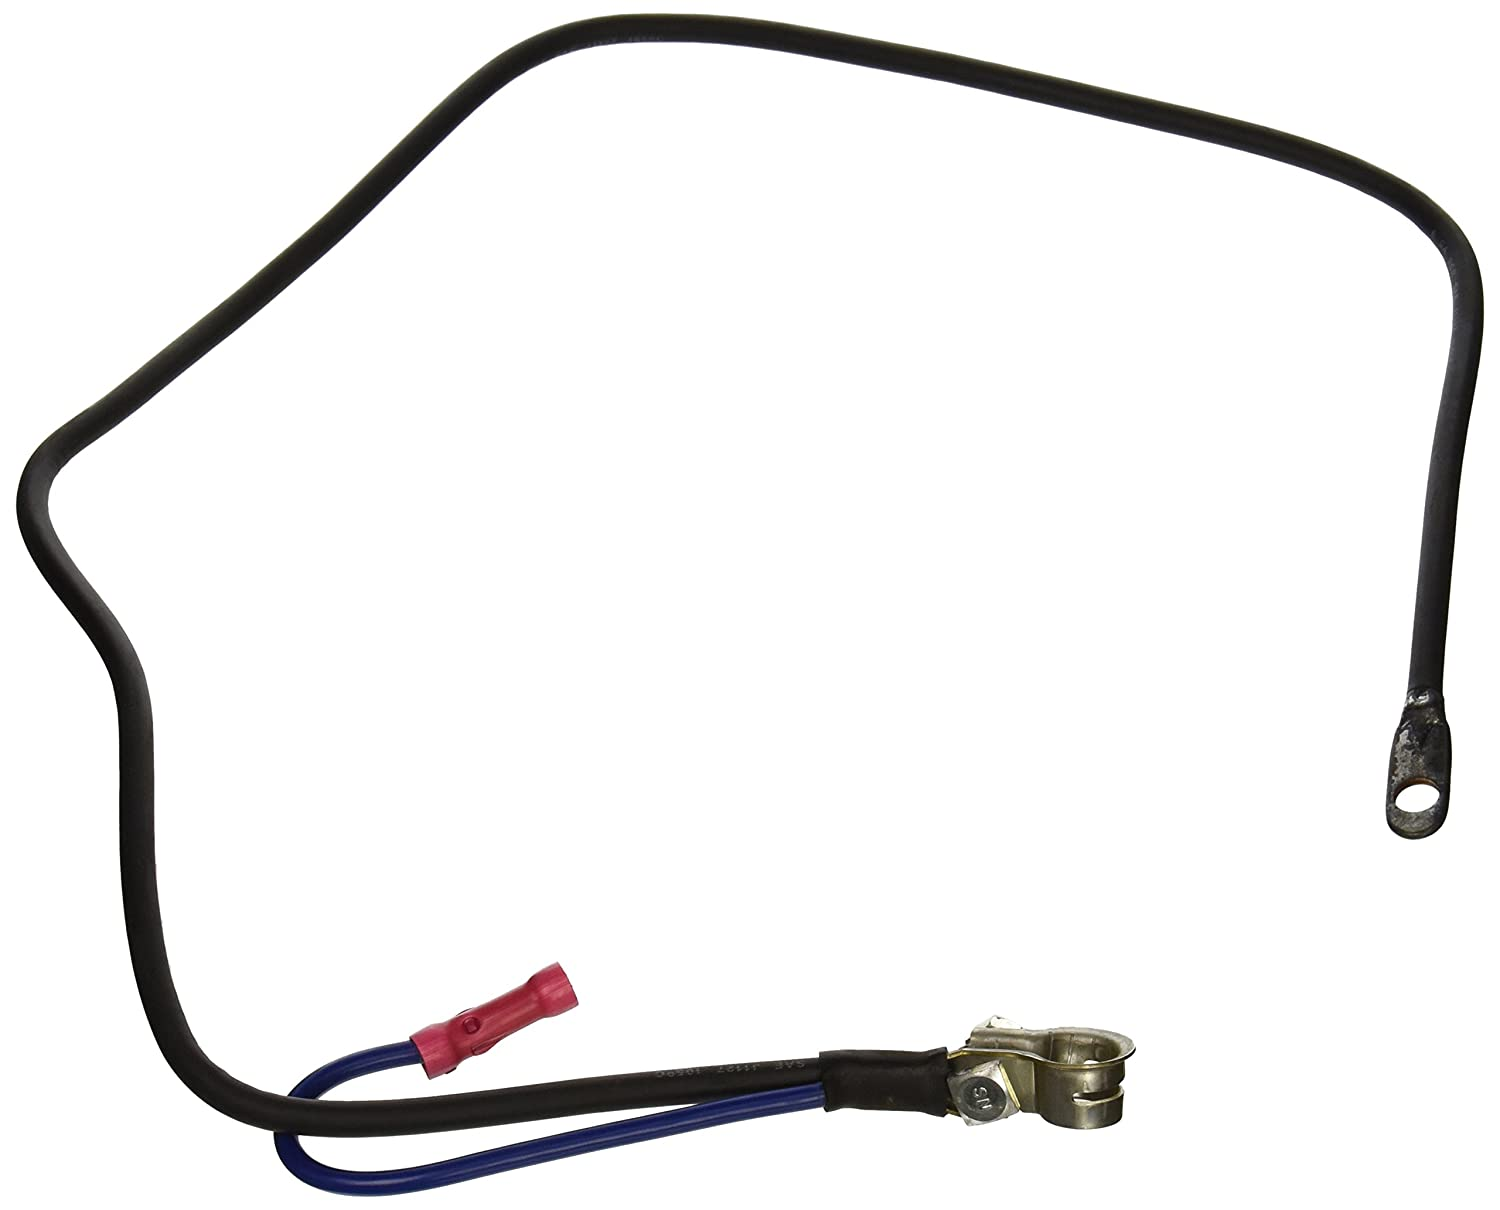 Standard Motor Products A42-6UT Battery Cable A42-6UT-STD